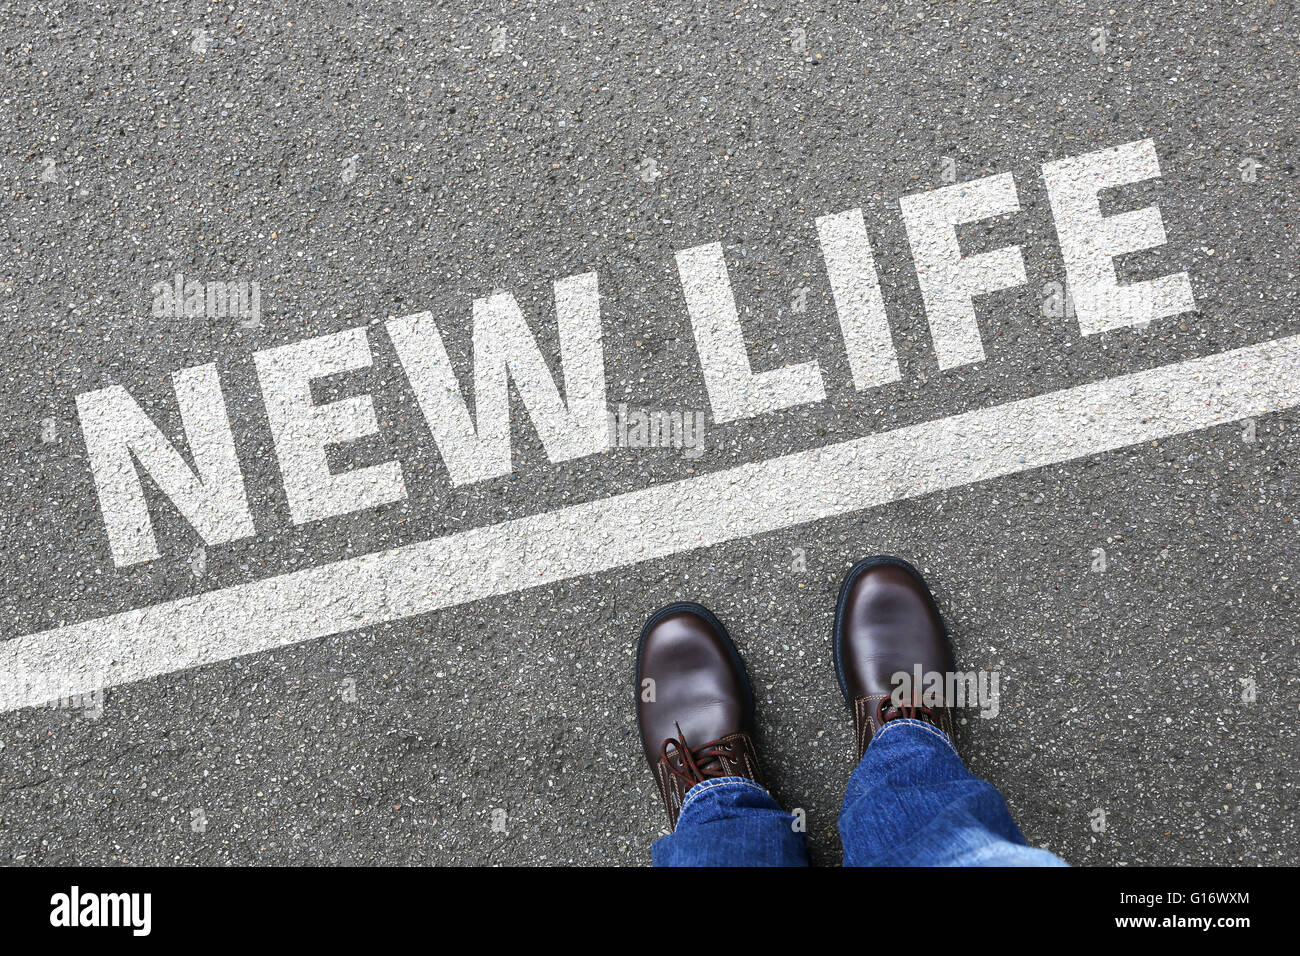 New life beginning beginnings future past goals success decision change decide - Stock Image